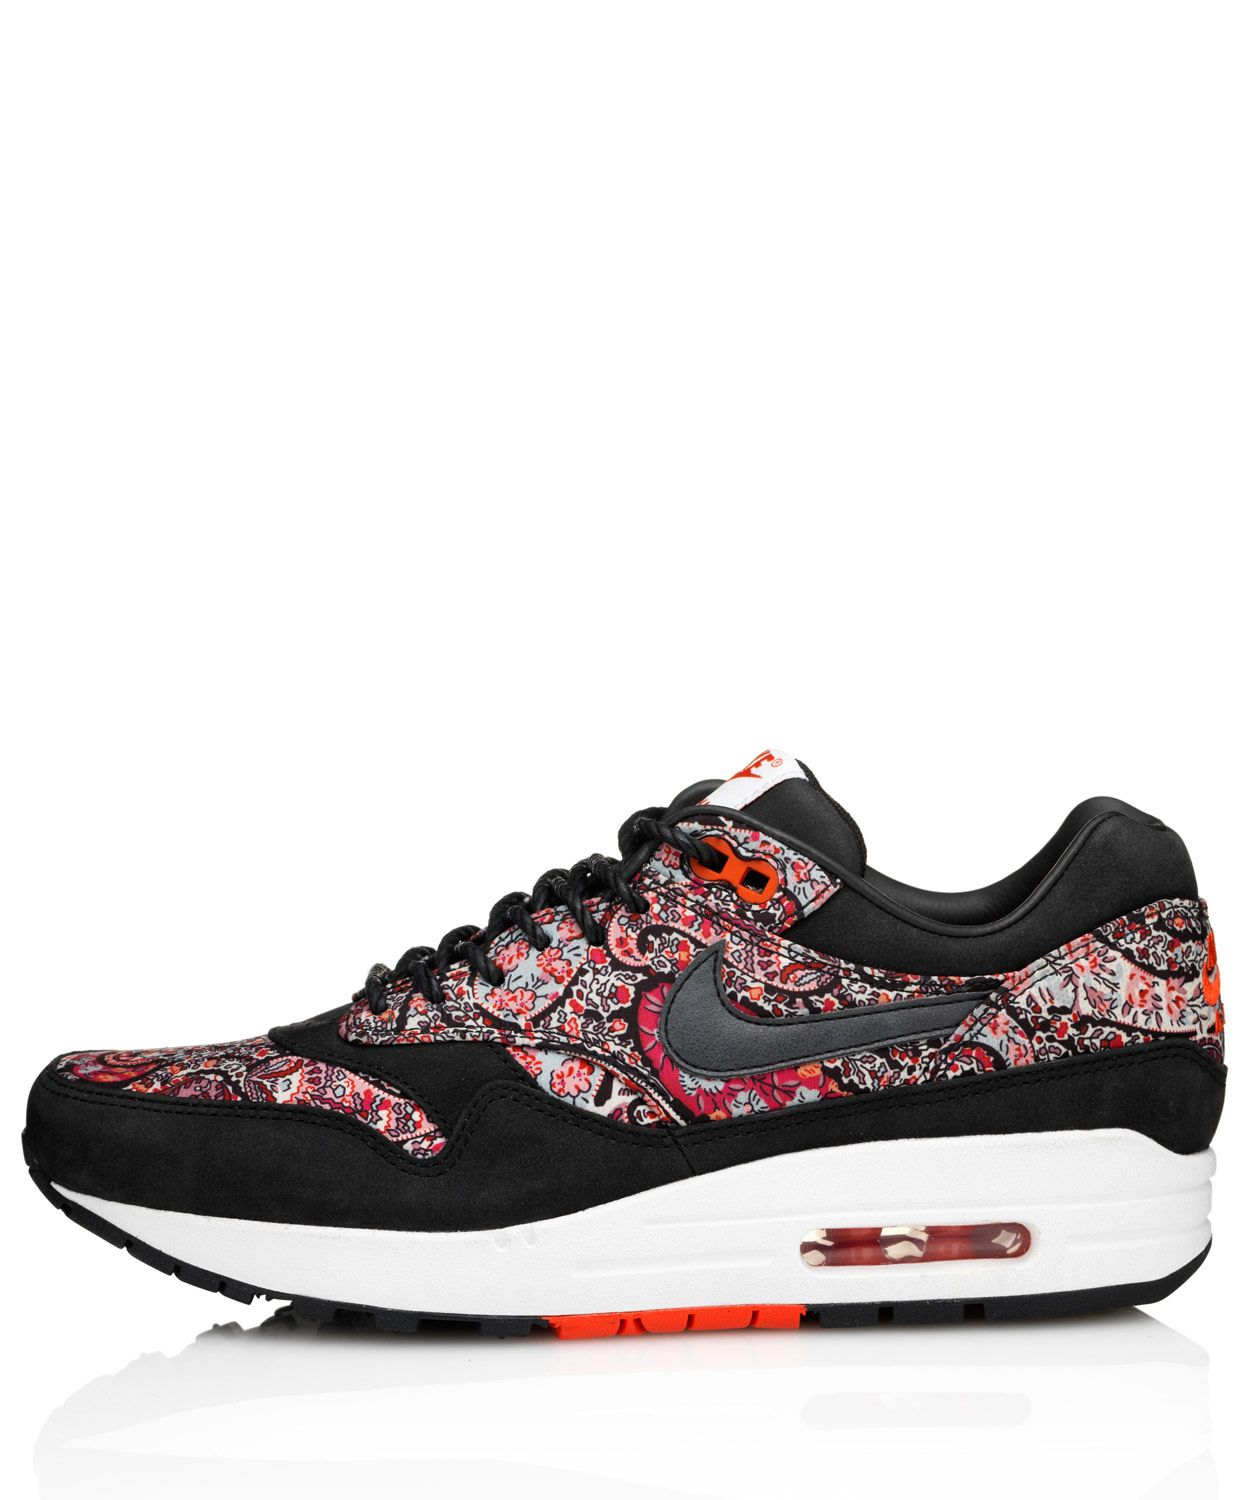 nike air max 1 x liberty london pixel pack n play